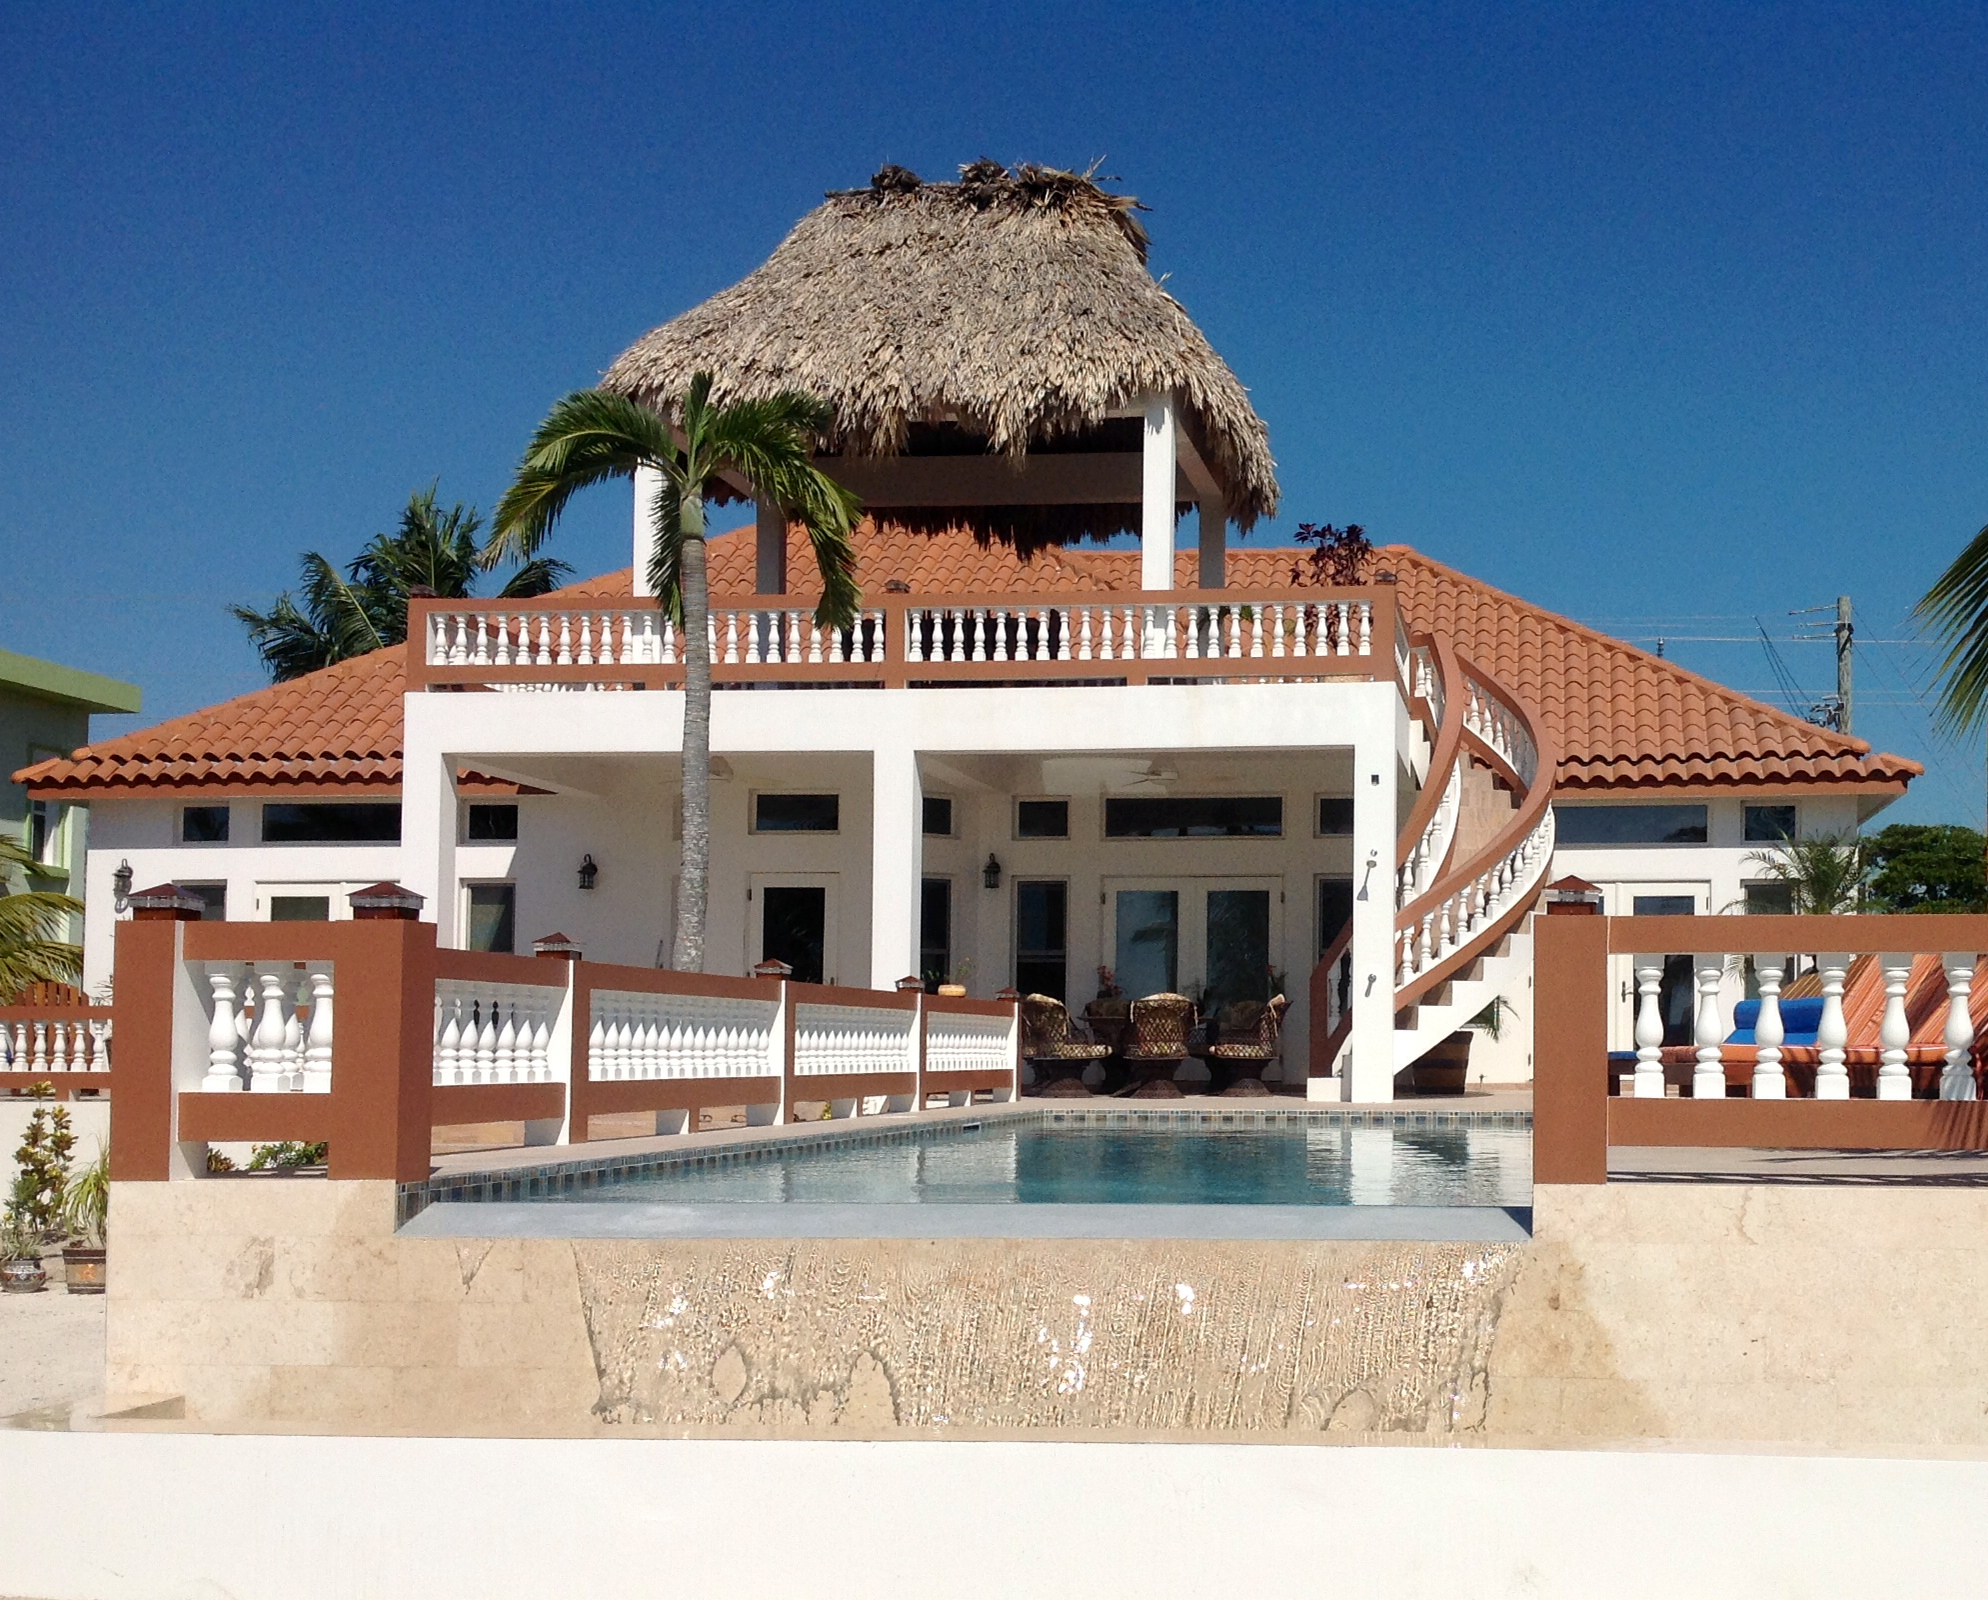 Single Family Home for Rent at Casa Checking Out San Pedro Town, Ambergris Caye Belize